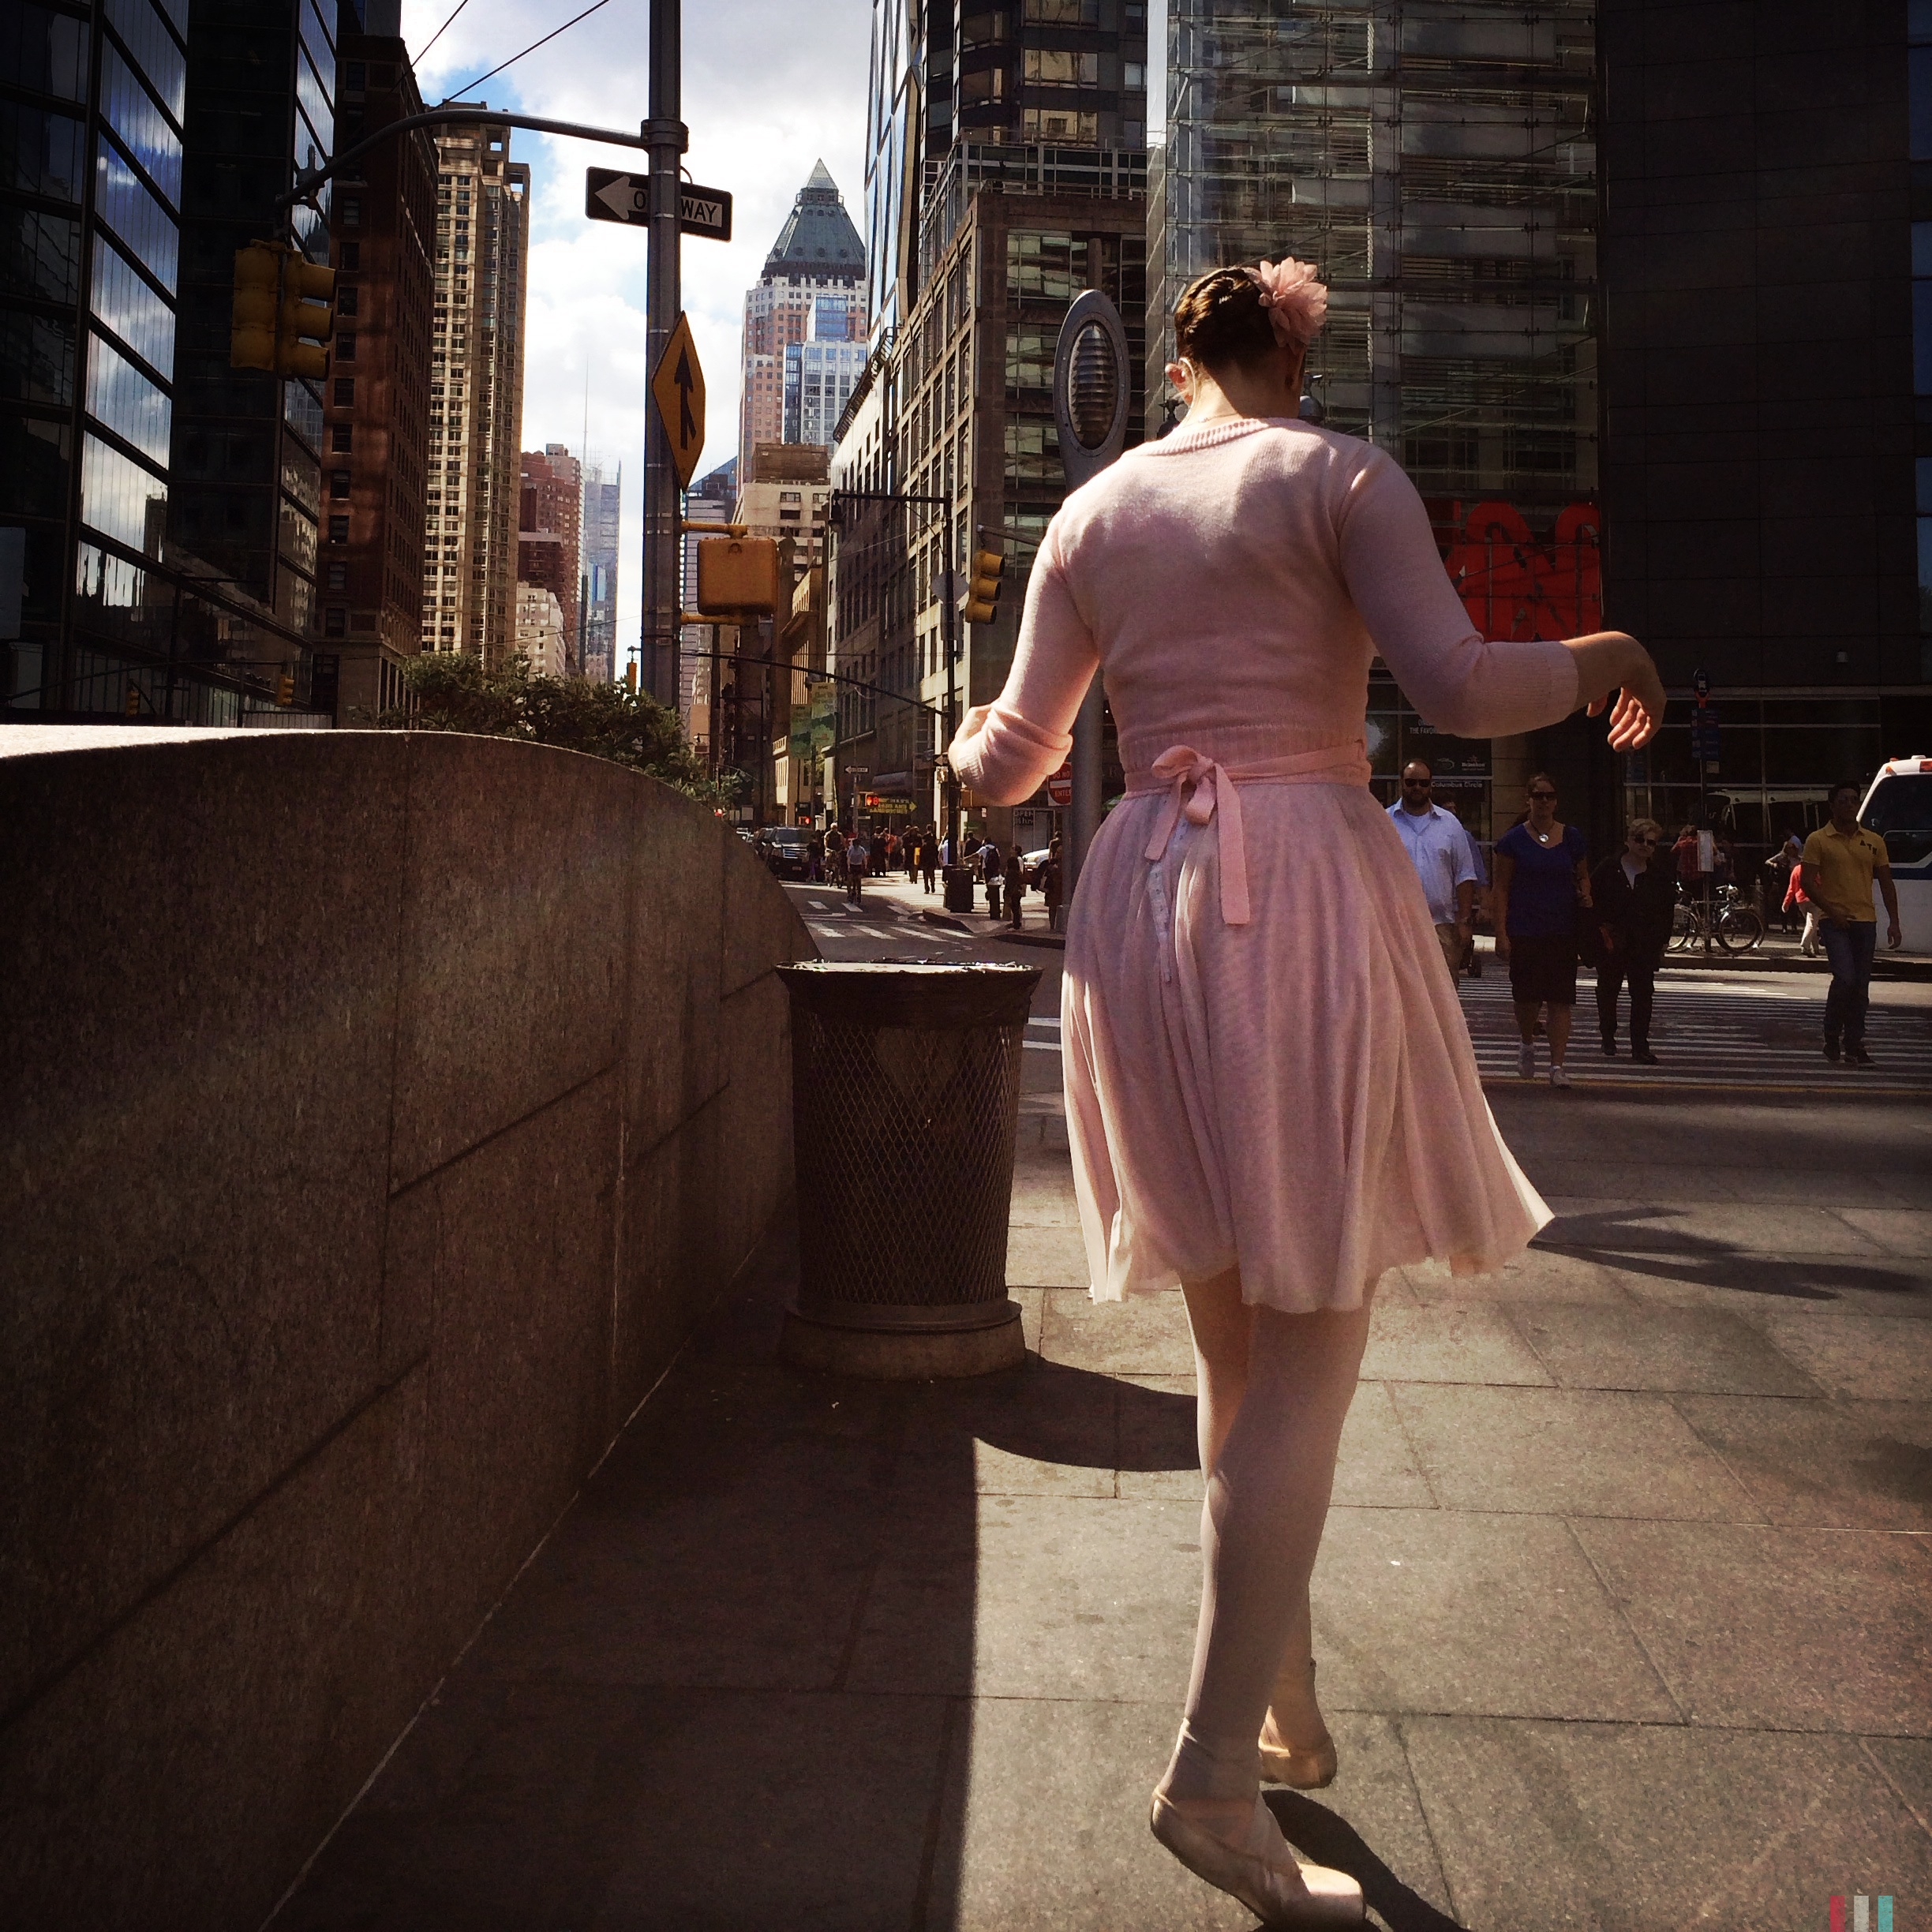 Ballerina in Columbus Circle